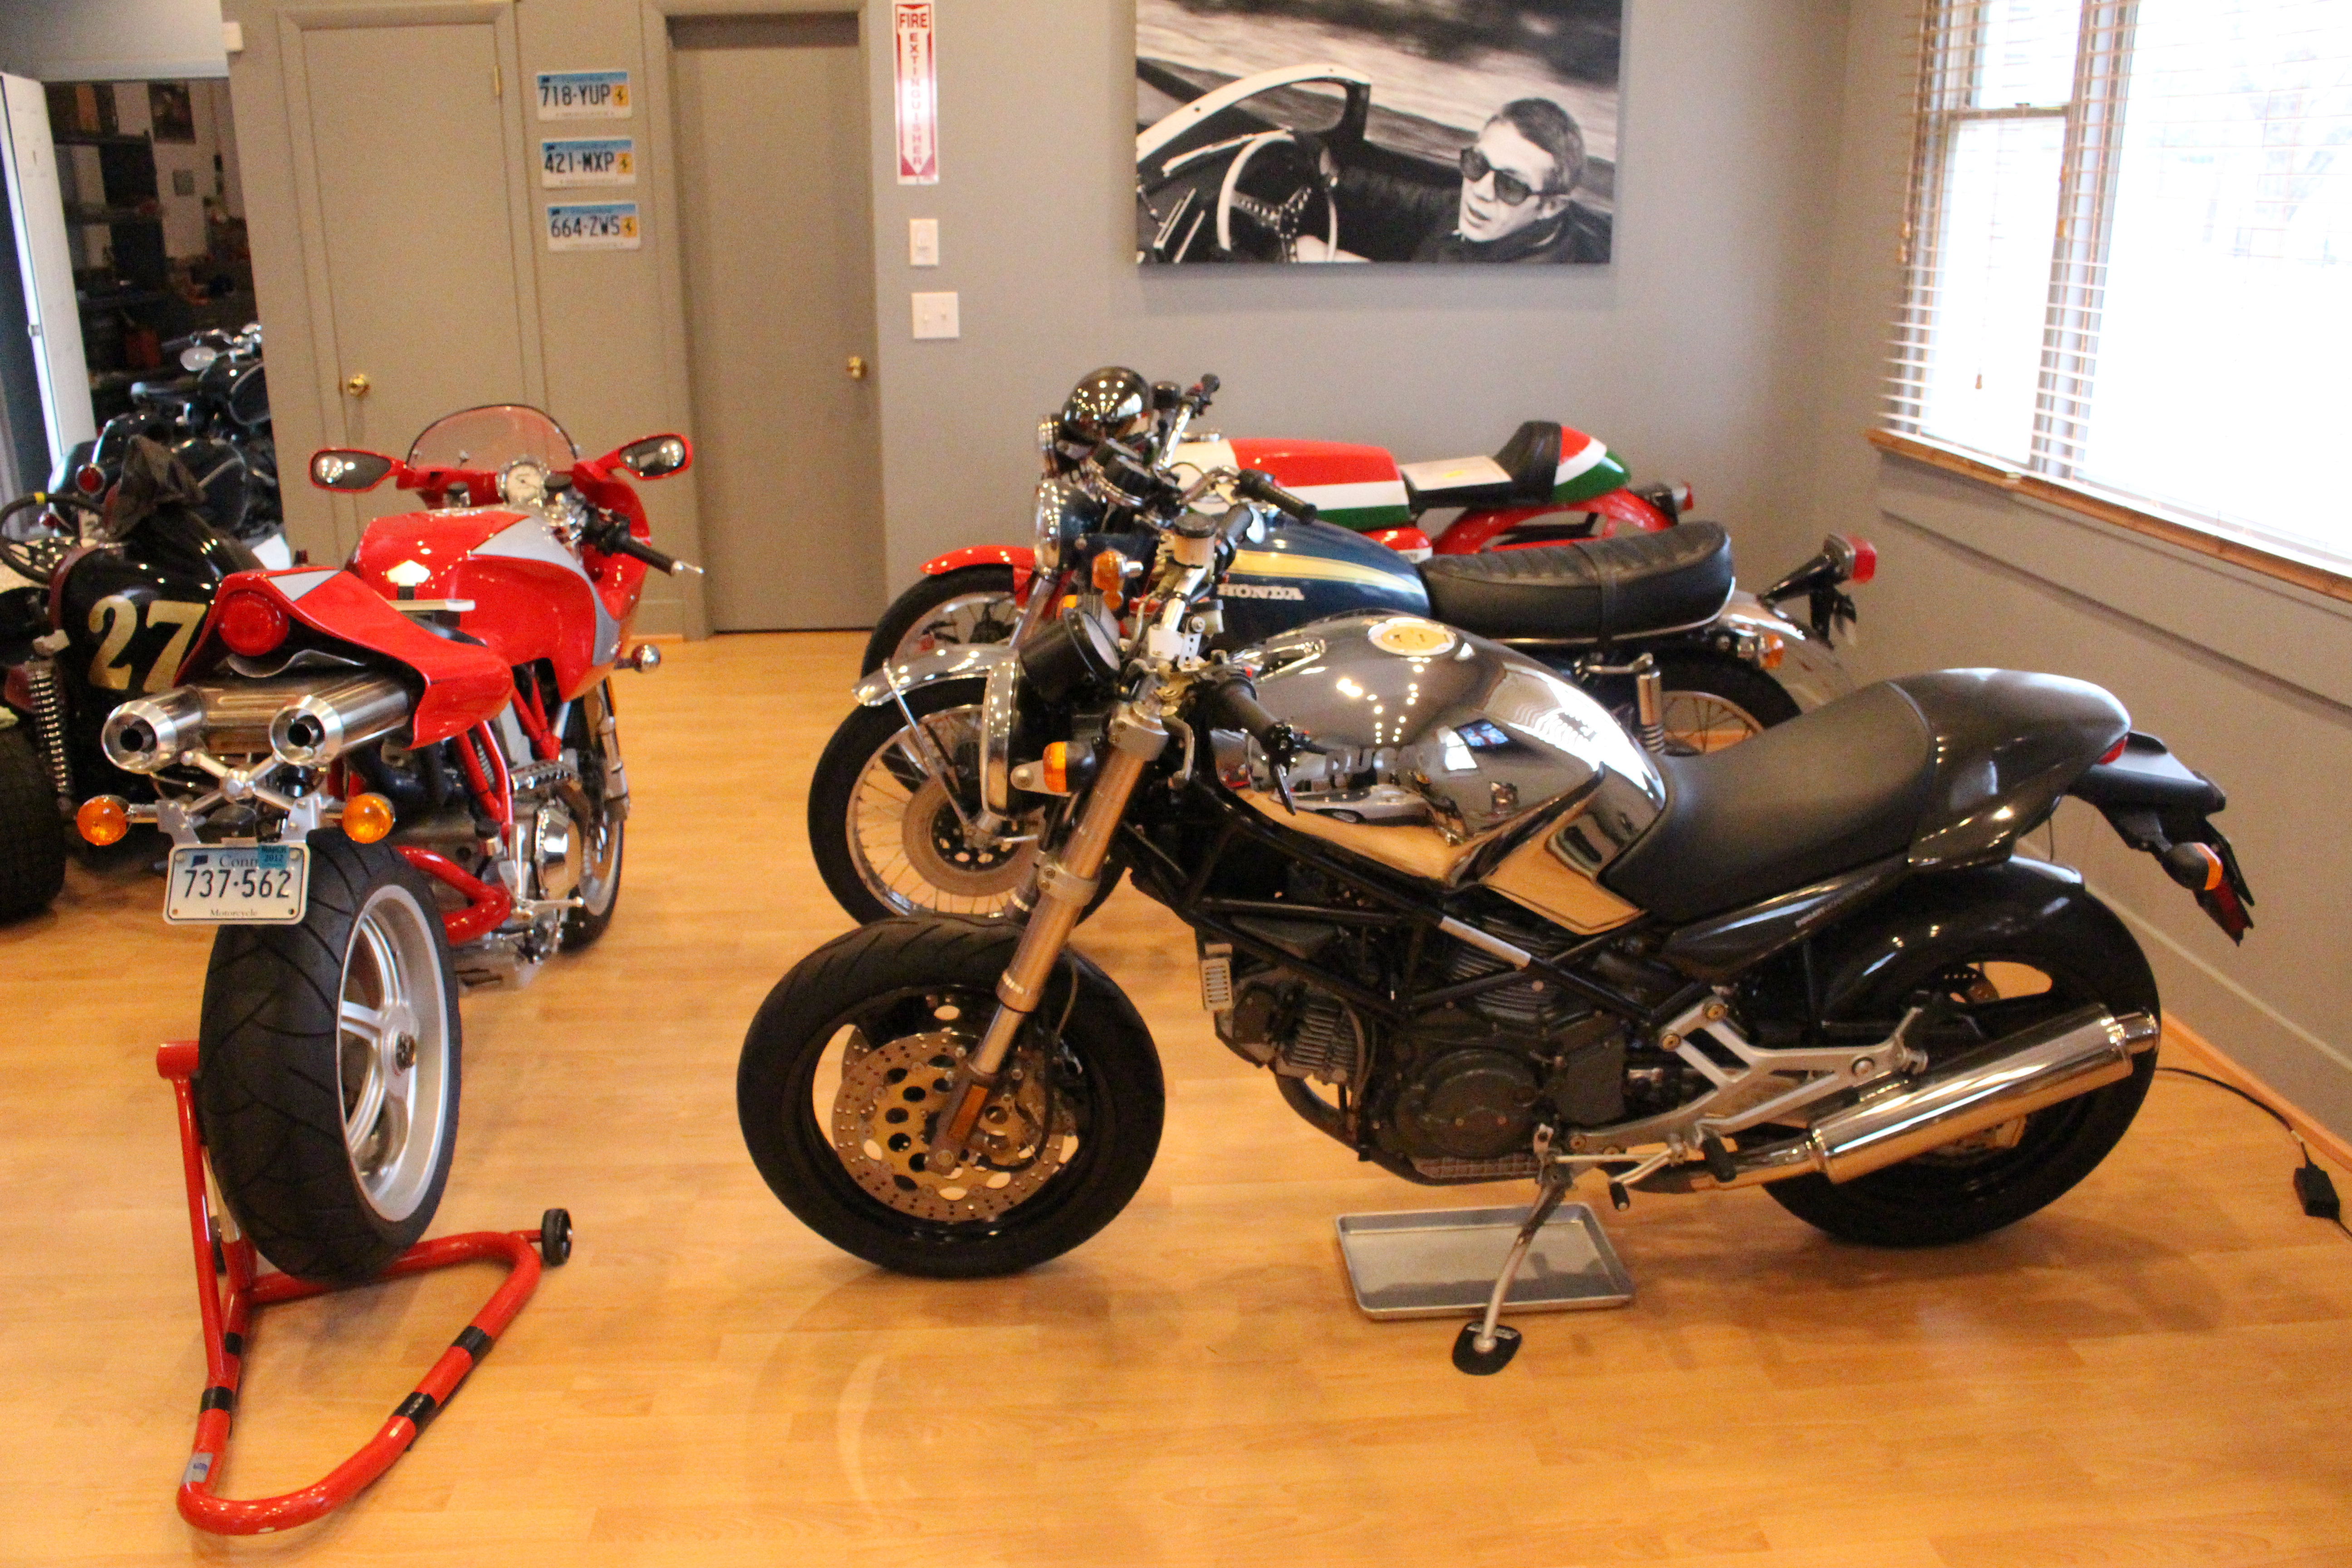 Ducati Monster 900/Monster 900 Dark/Monster 900 City/Monster 900 Cromo/Monster 900 Special 2000 #13